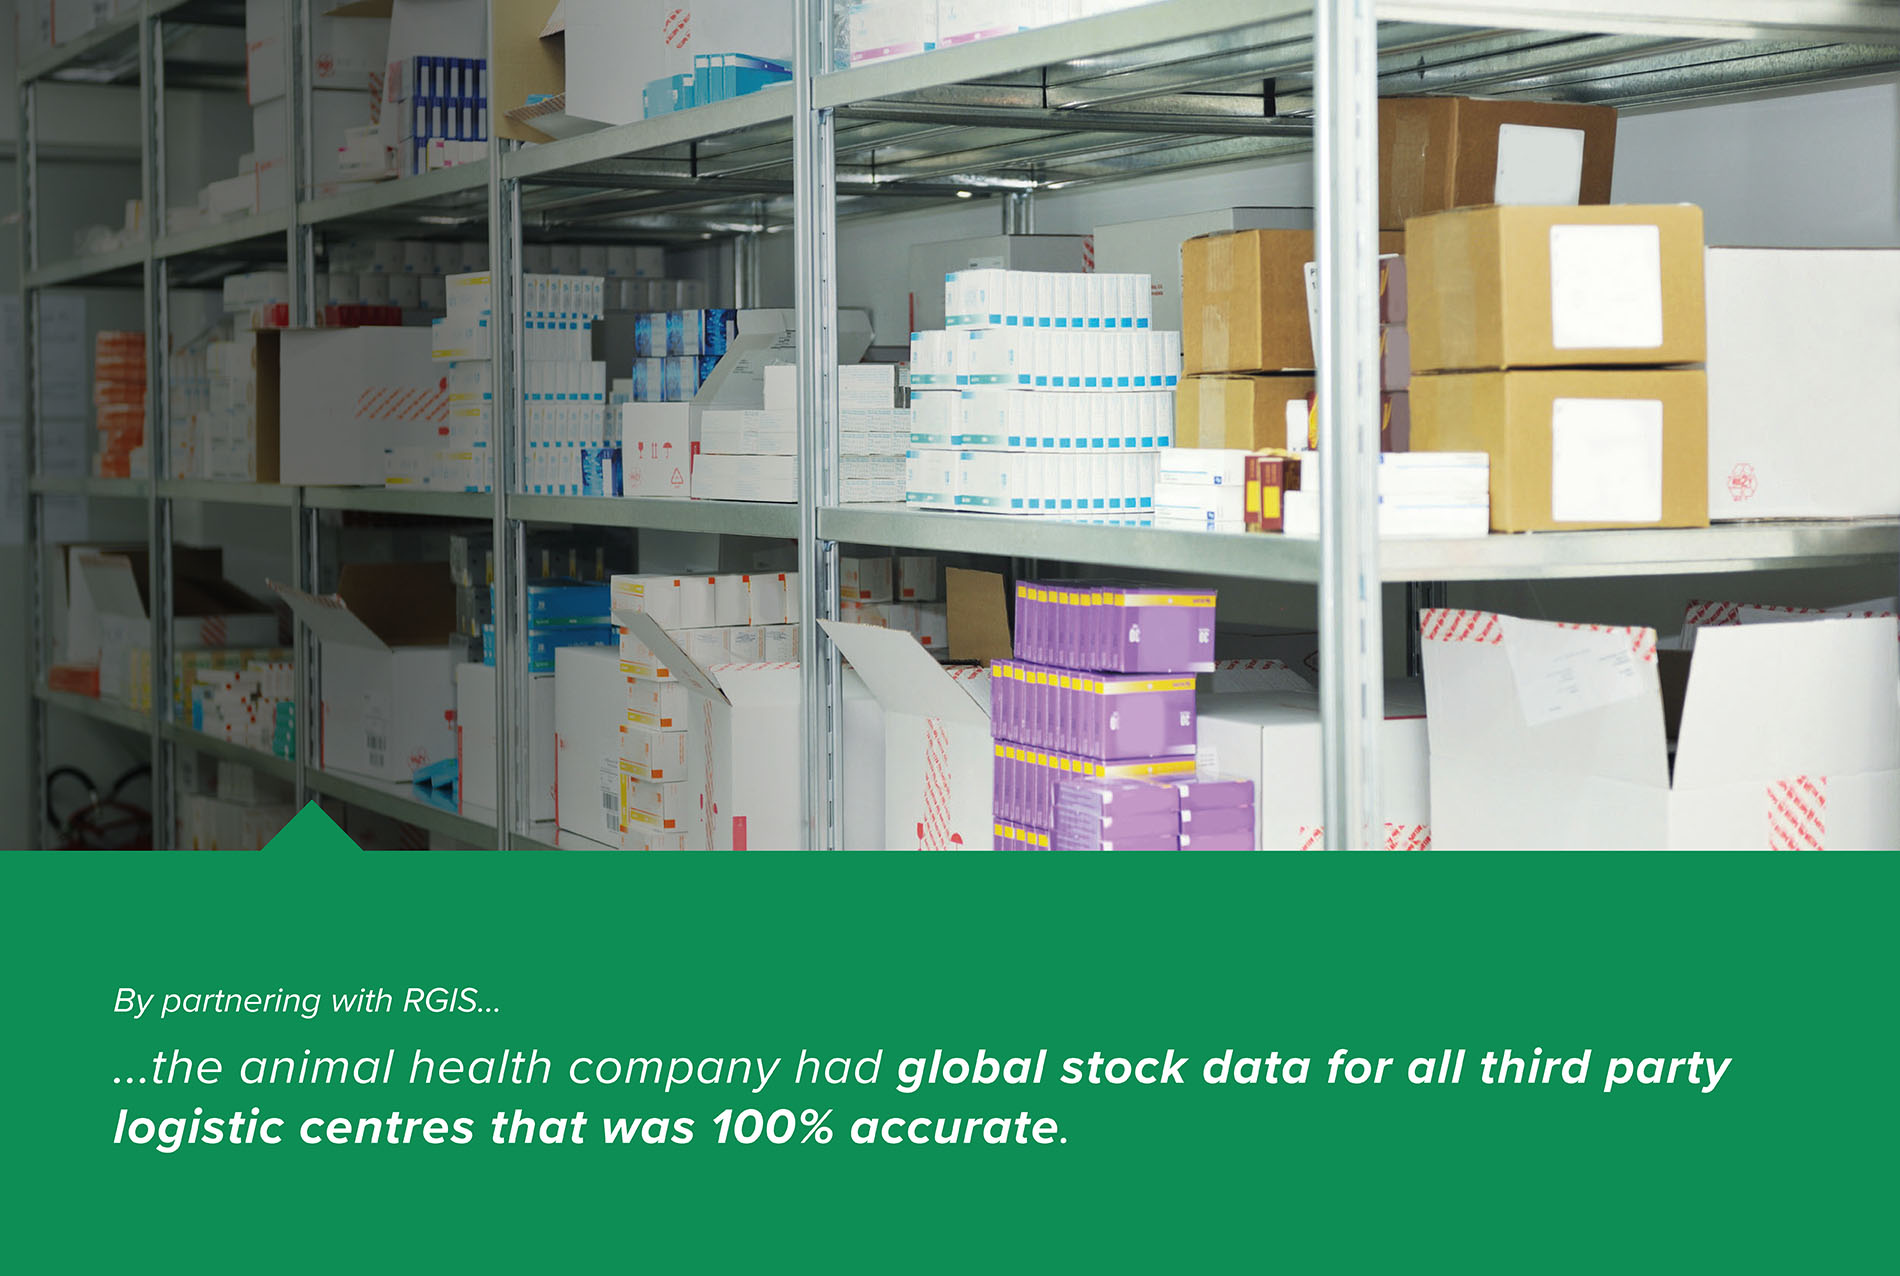 Global Third Party Logistic Centre Counts